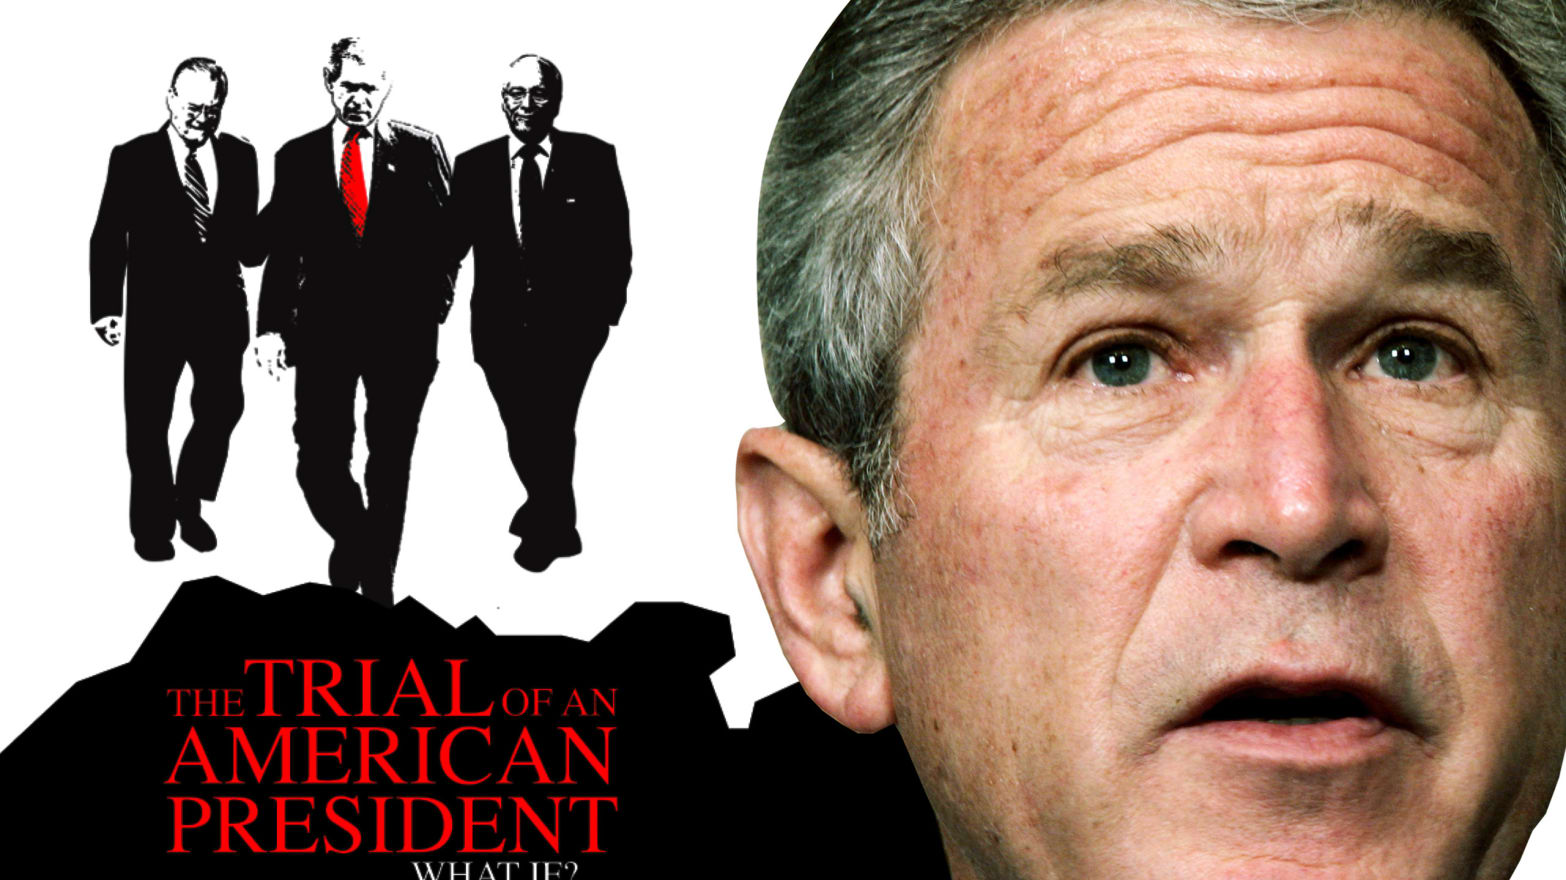 President Bush Confesses Hes War >> The Play Putting George W Bush On Trial For War Crimes